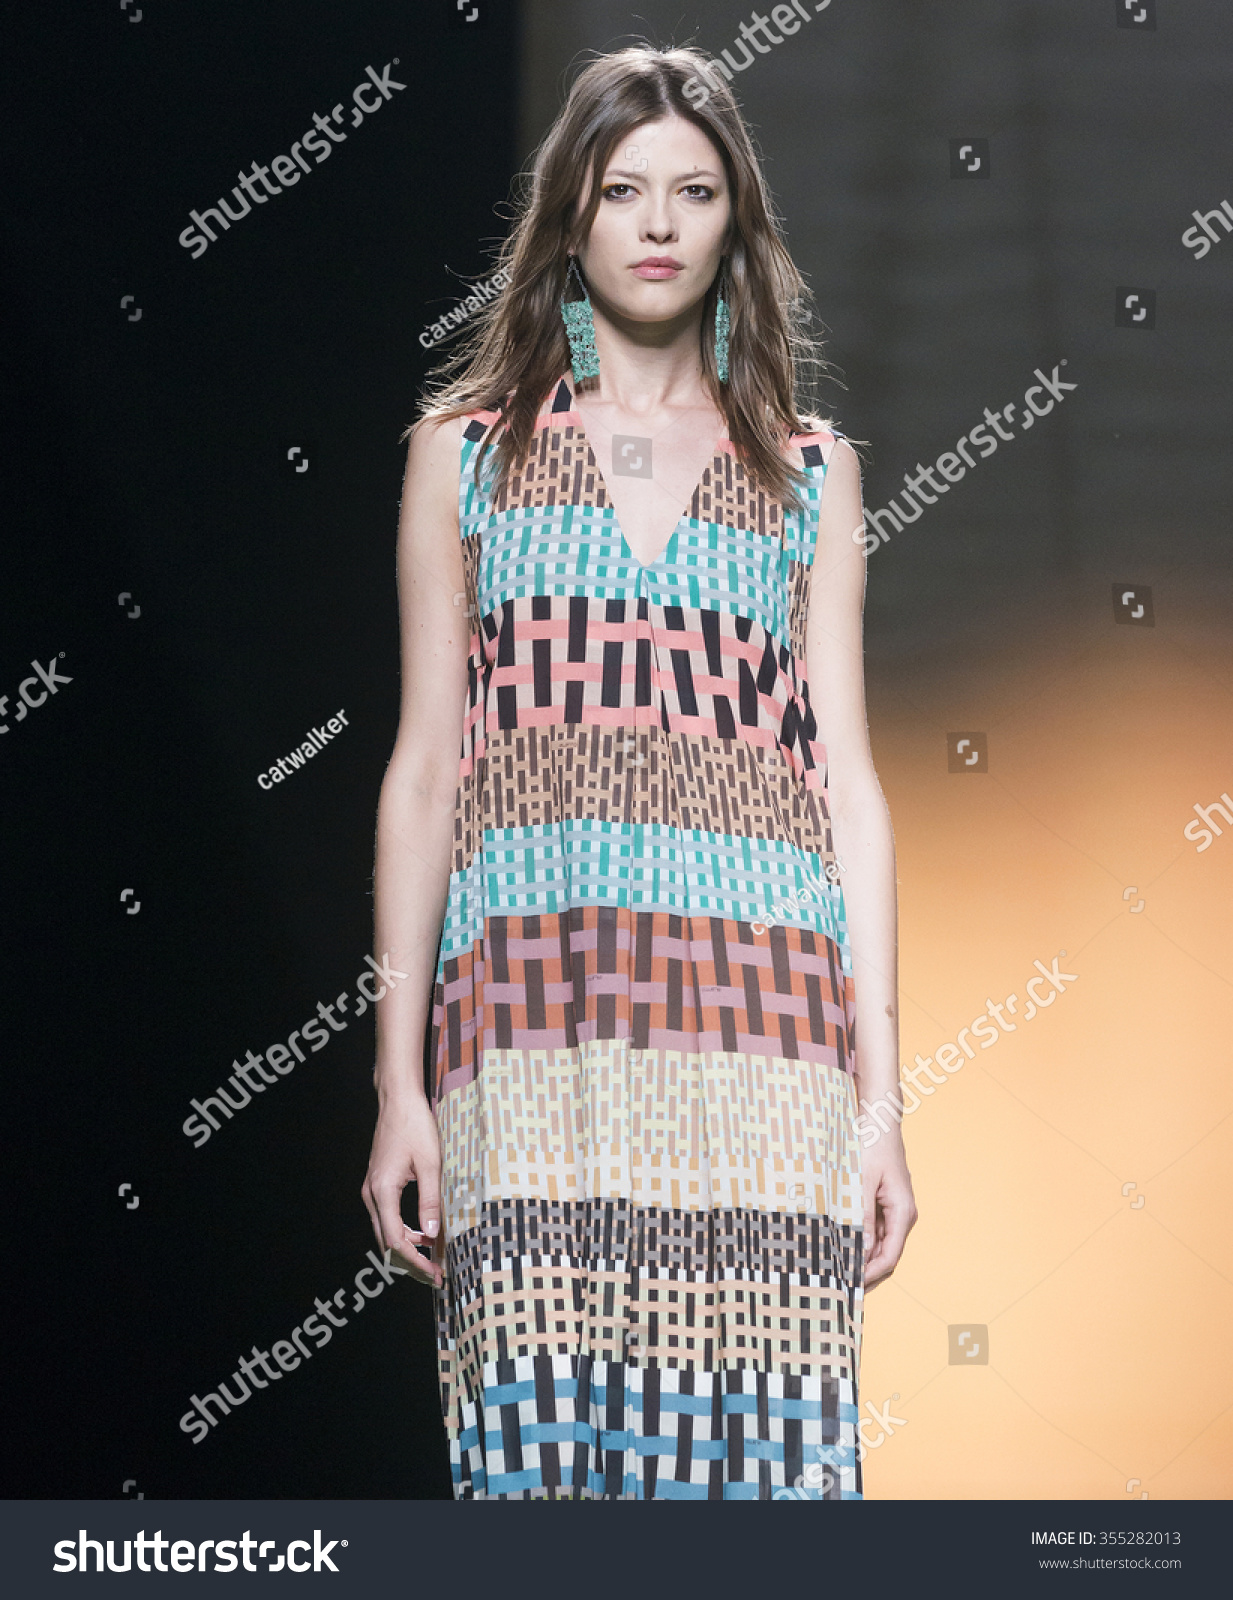 MADRID SEPTEMBER 18 a model walks on the Ailanto catwalk during the Mercedes-Benz Fashion Week Madrid Spring Summer 2016 runway on September 18 2015 in Madrid